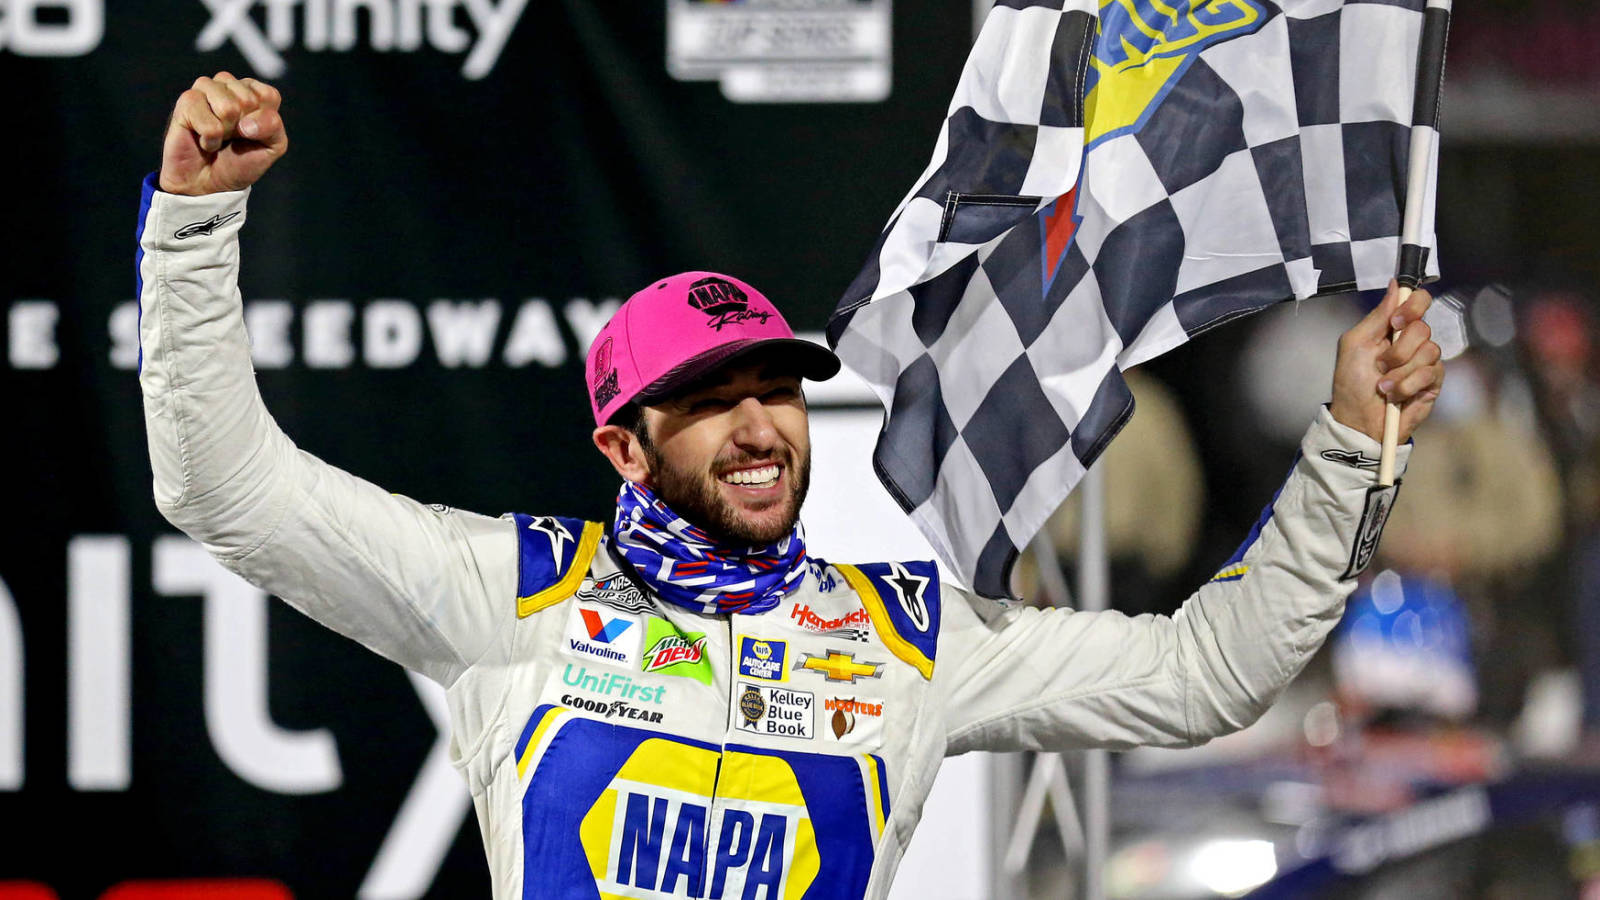 Watch: Chase Elliott celebrates first NASCAR Cup Series championship